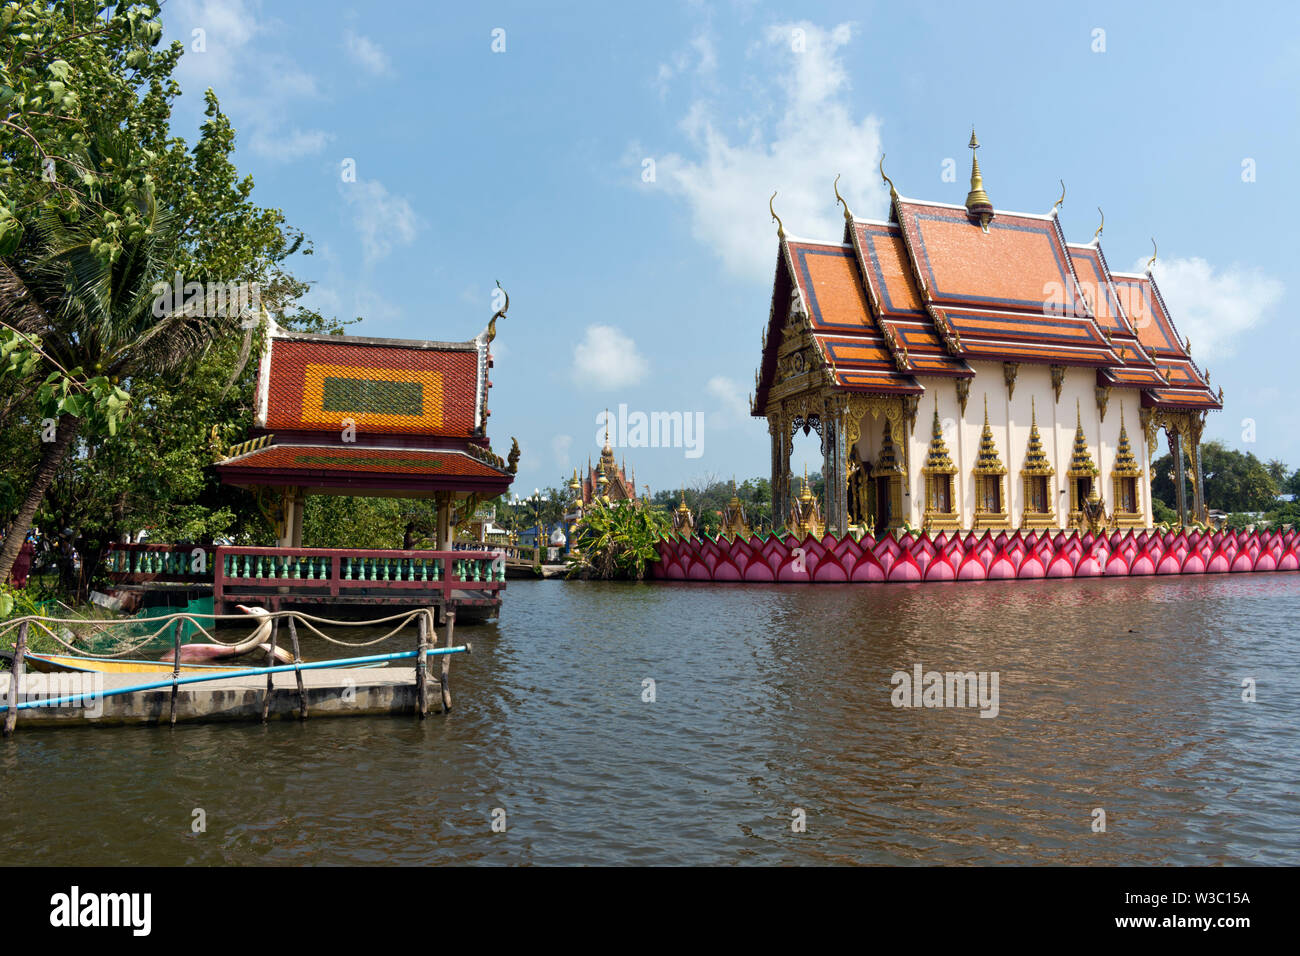 Plai Laem Temple at Ban Bo Phut, Koh Samui, Thailand Stock Photo